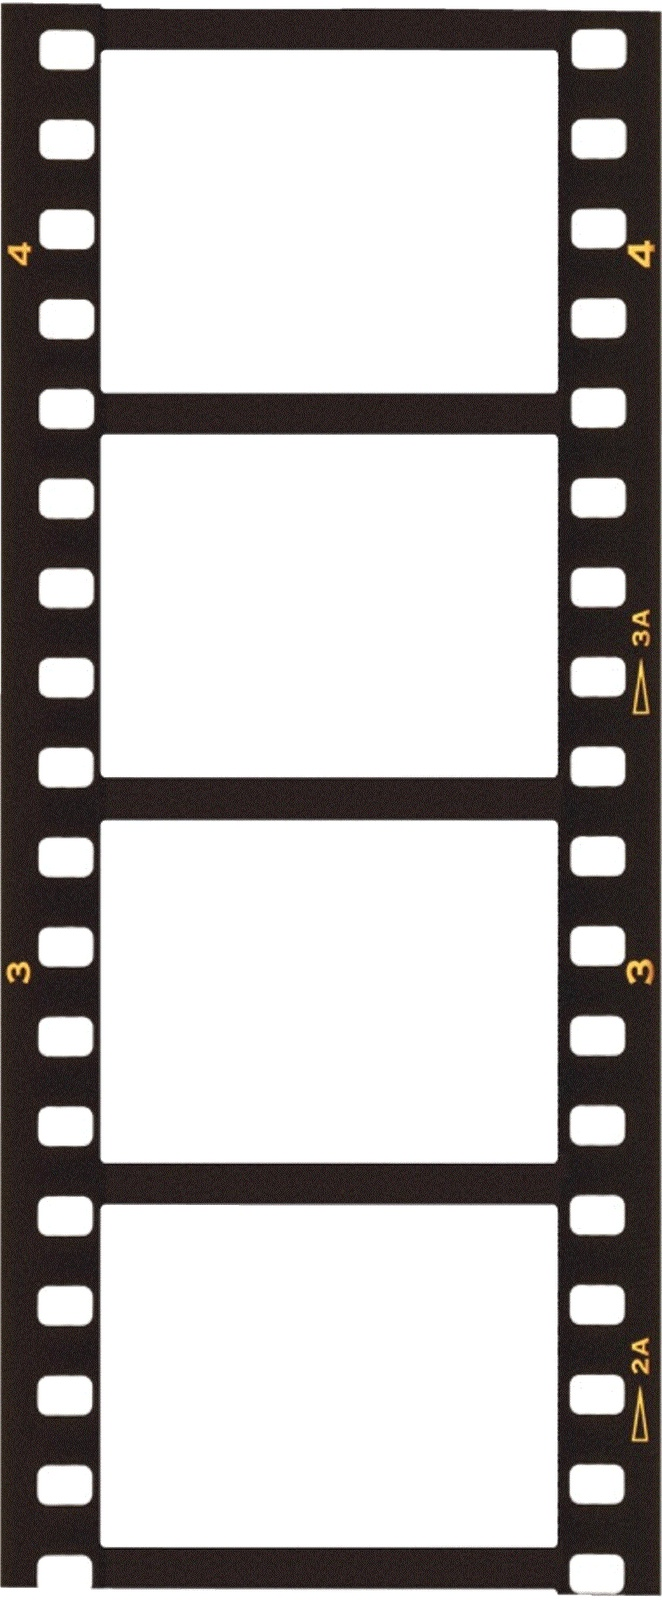 film strip picture template - free photo booth strip templates search results